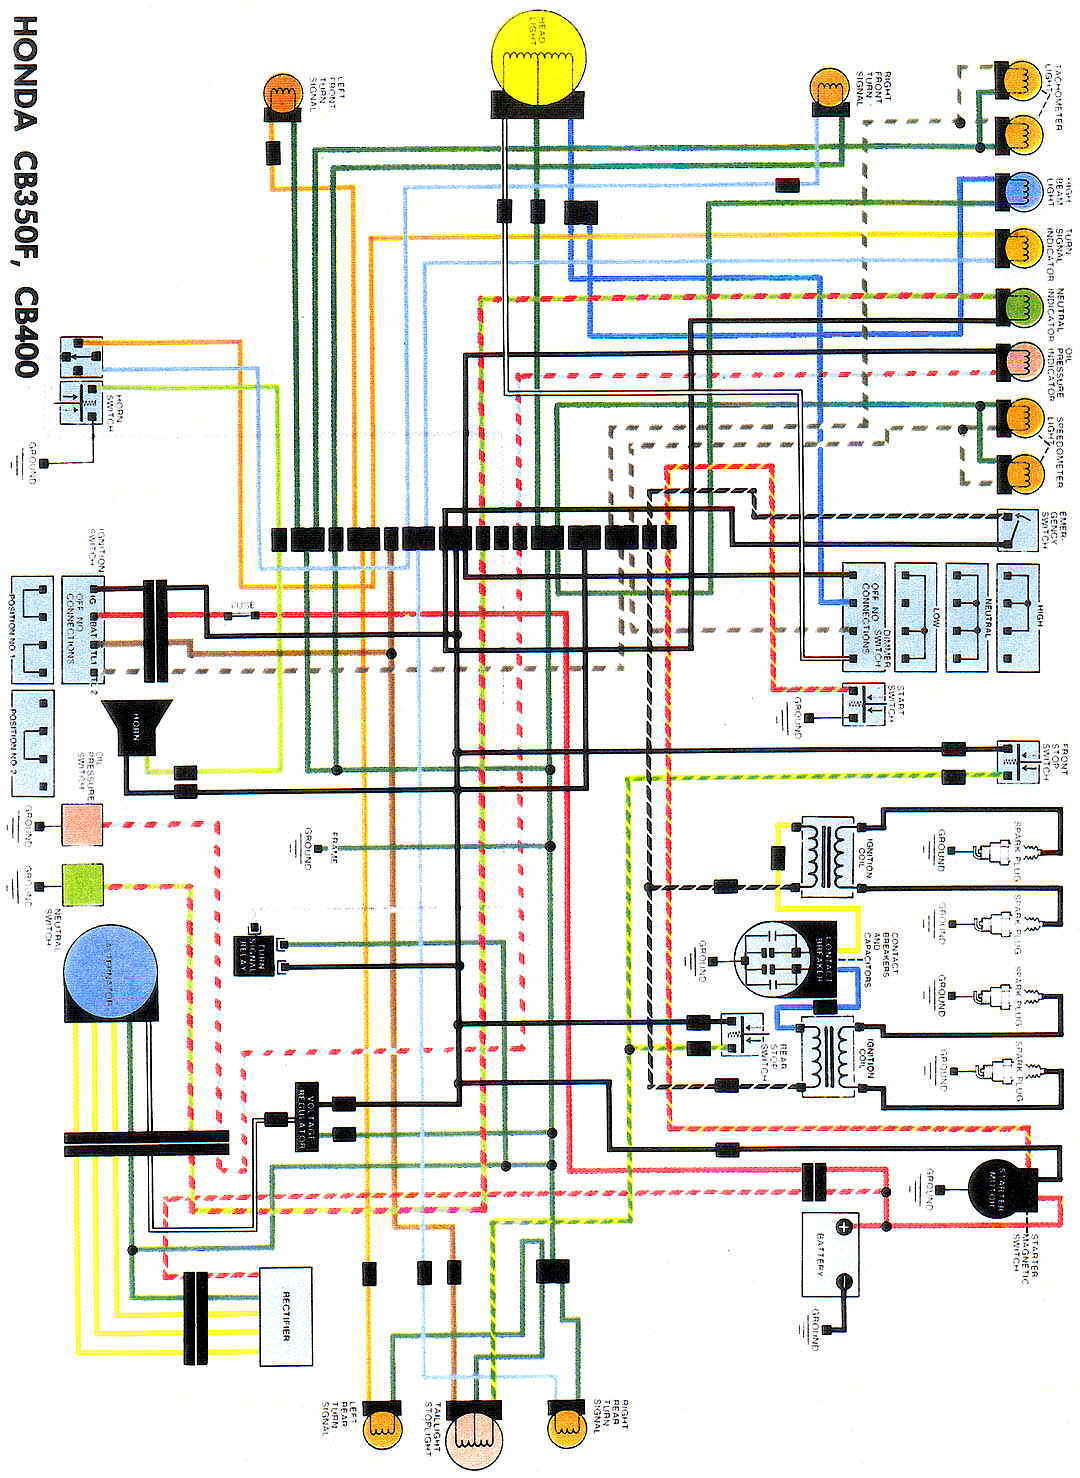 cb wiring diagram cb image wiring diagram cb400 wiring diagram cb400 auto wiring diagram schematic on cb400 wiring diagram